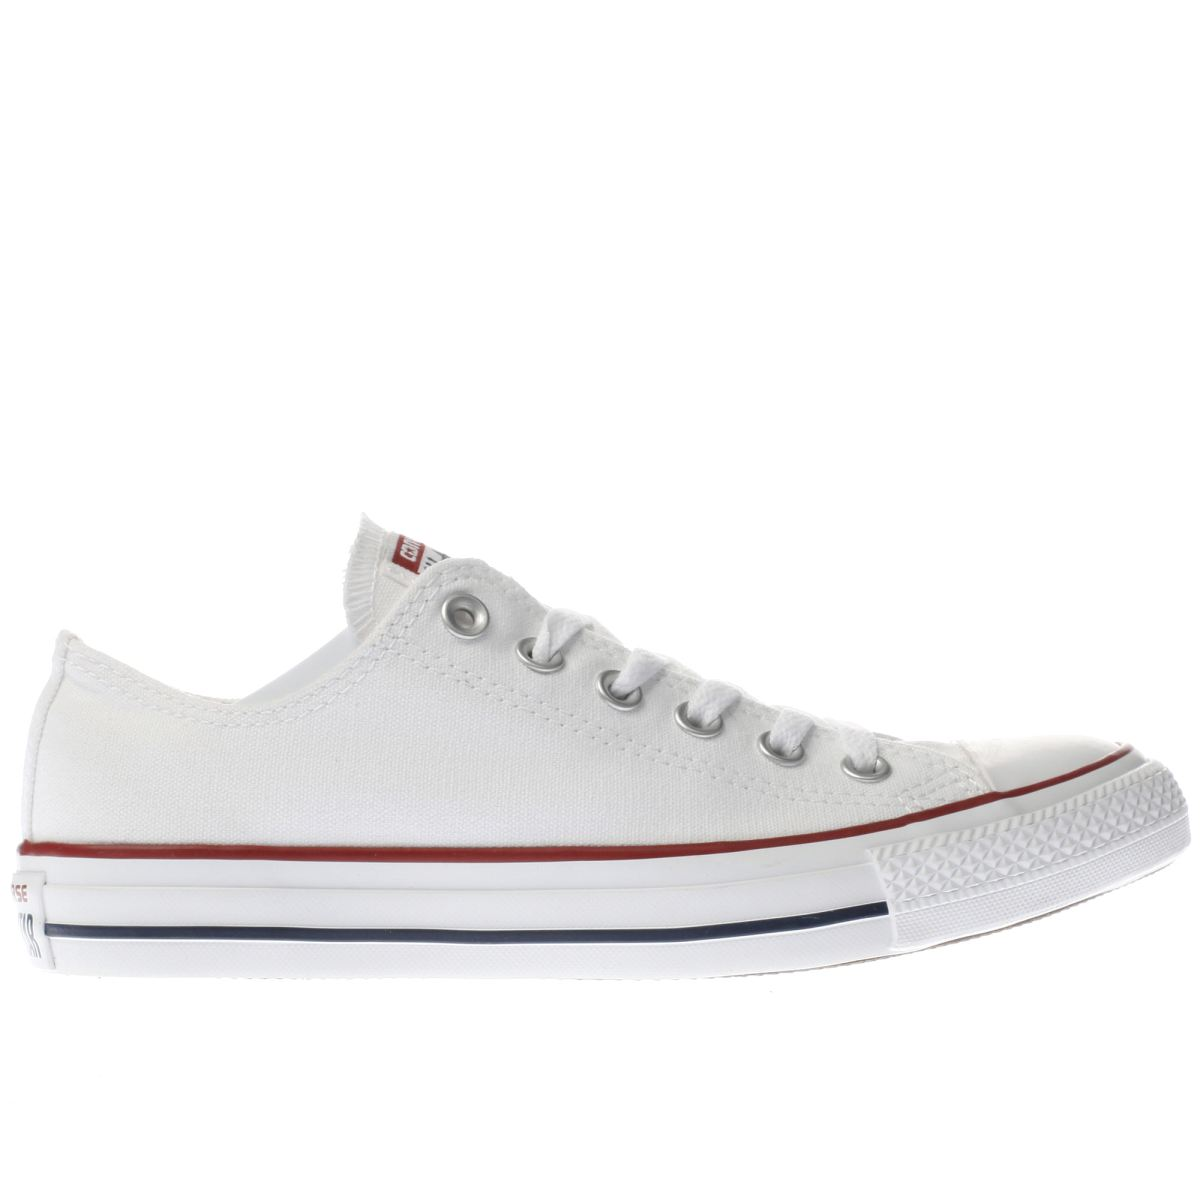 converse trainers converse white all star oxford womens trainers JUCAIWS